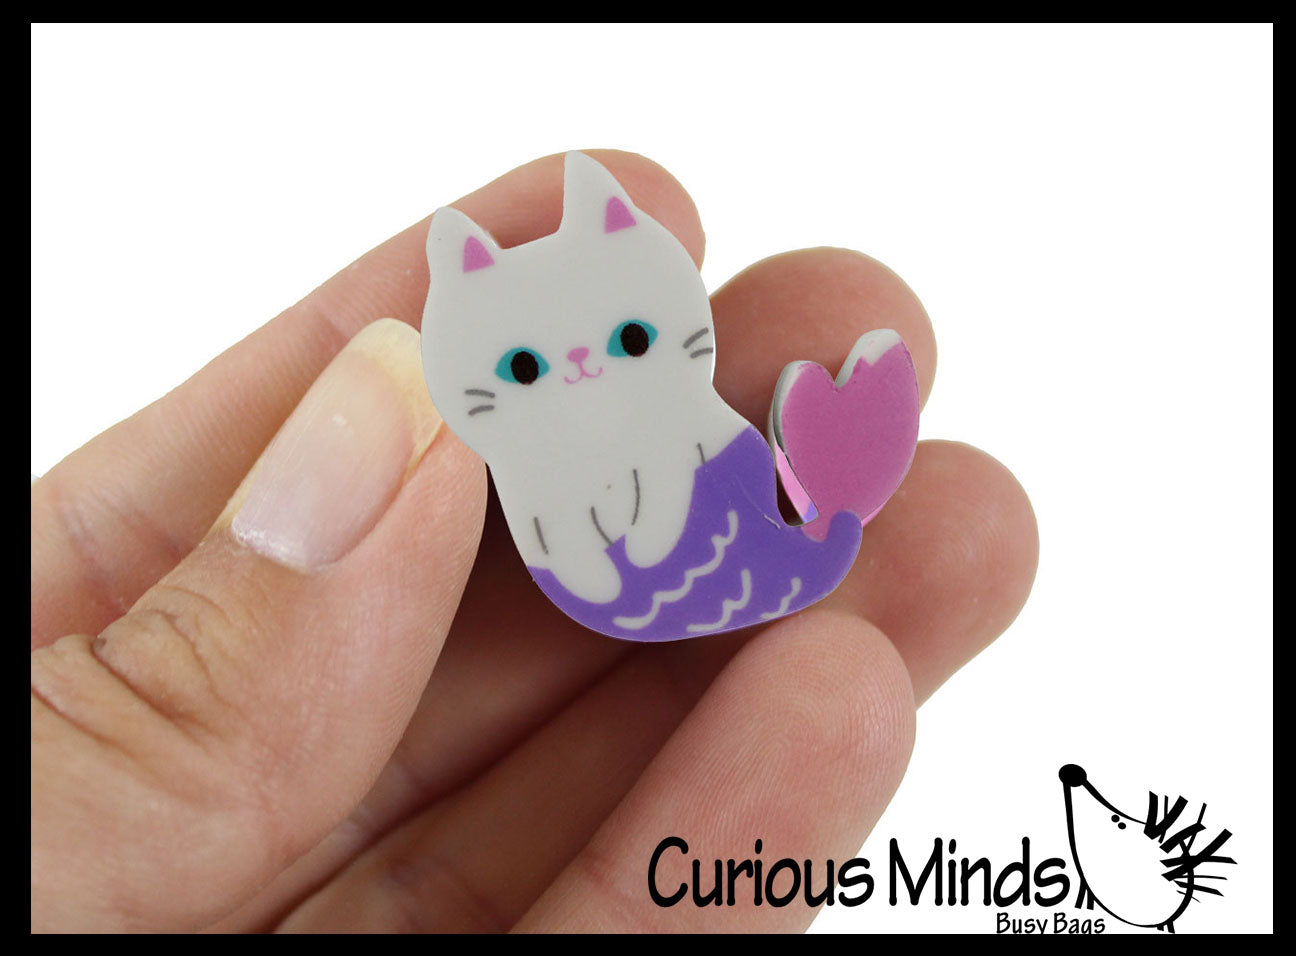 Mermaid Cat - Mercat Kitty Adorable Erasers - Novelty and Functional Adorable Eraser Novelty Treasure Prize, School Classroom Supply, Math Counters - Sorting - Party Favor